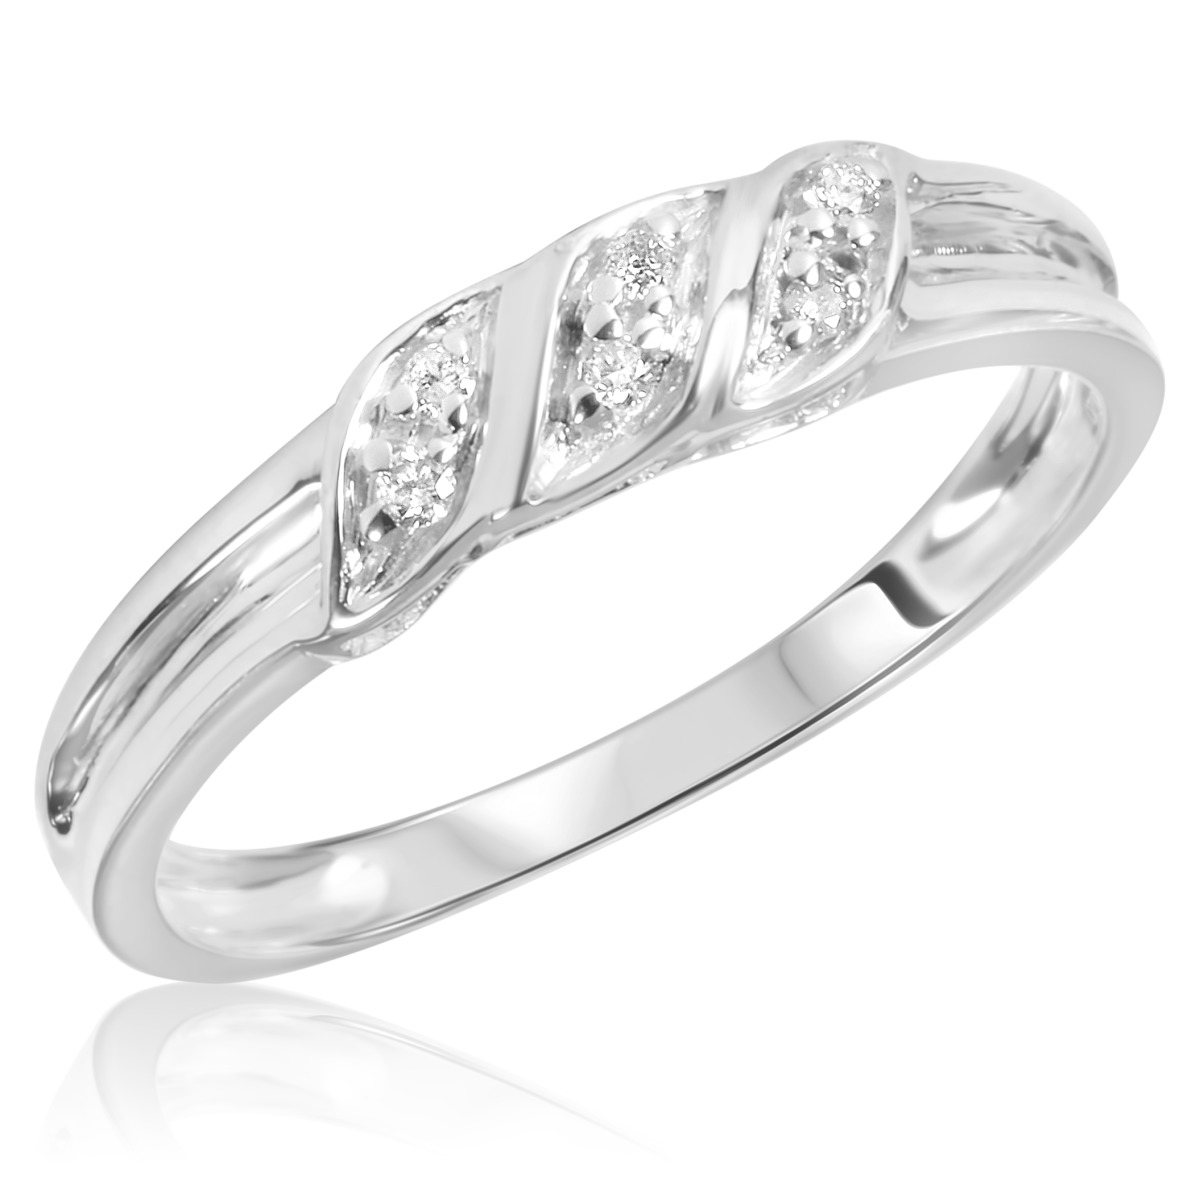 Women39;s Wedding Ring 14K White Gold  My Trio Rings  BT133W14KL